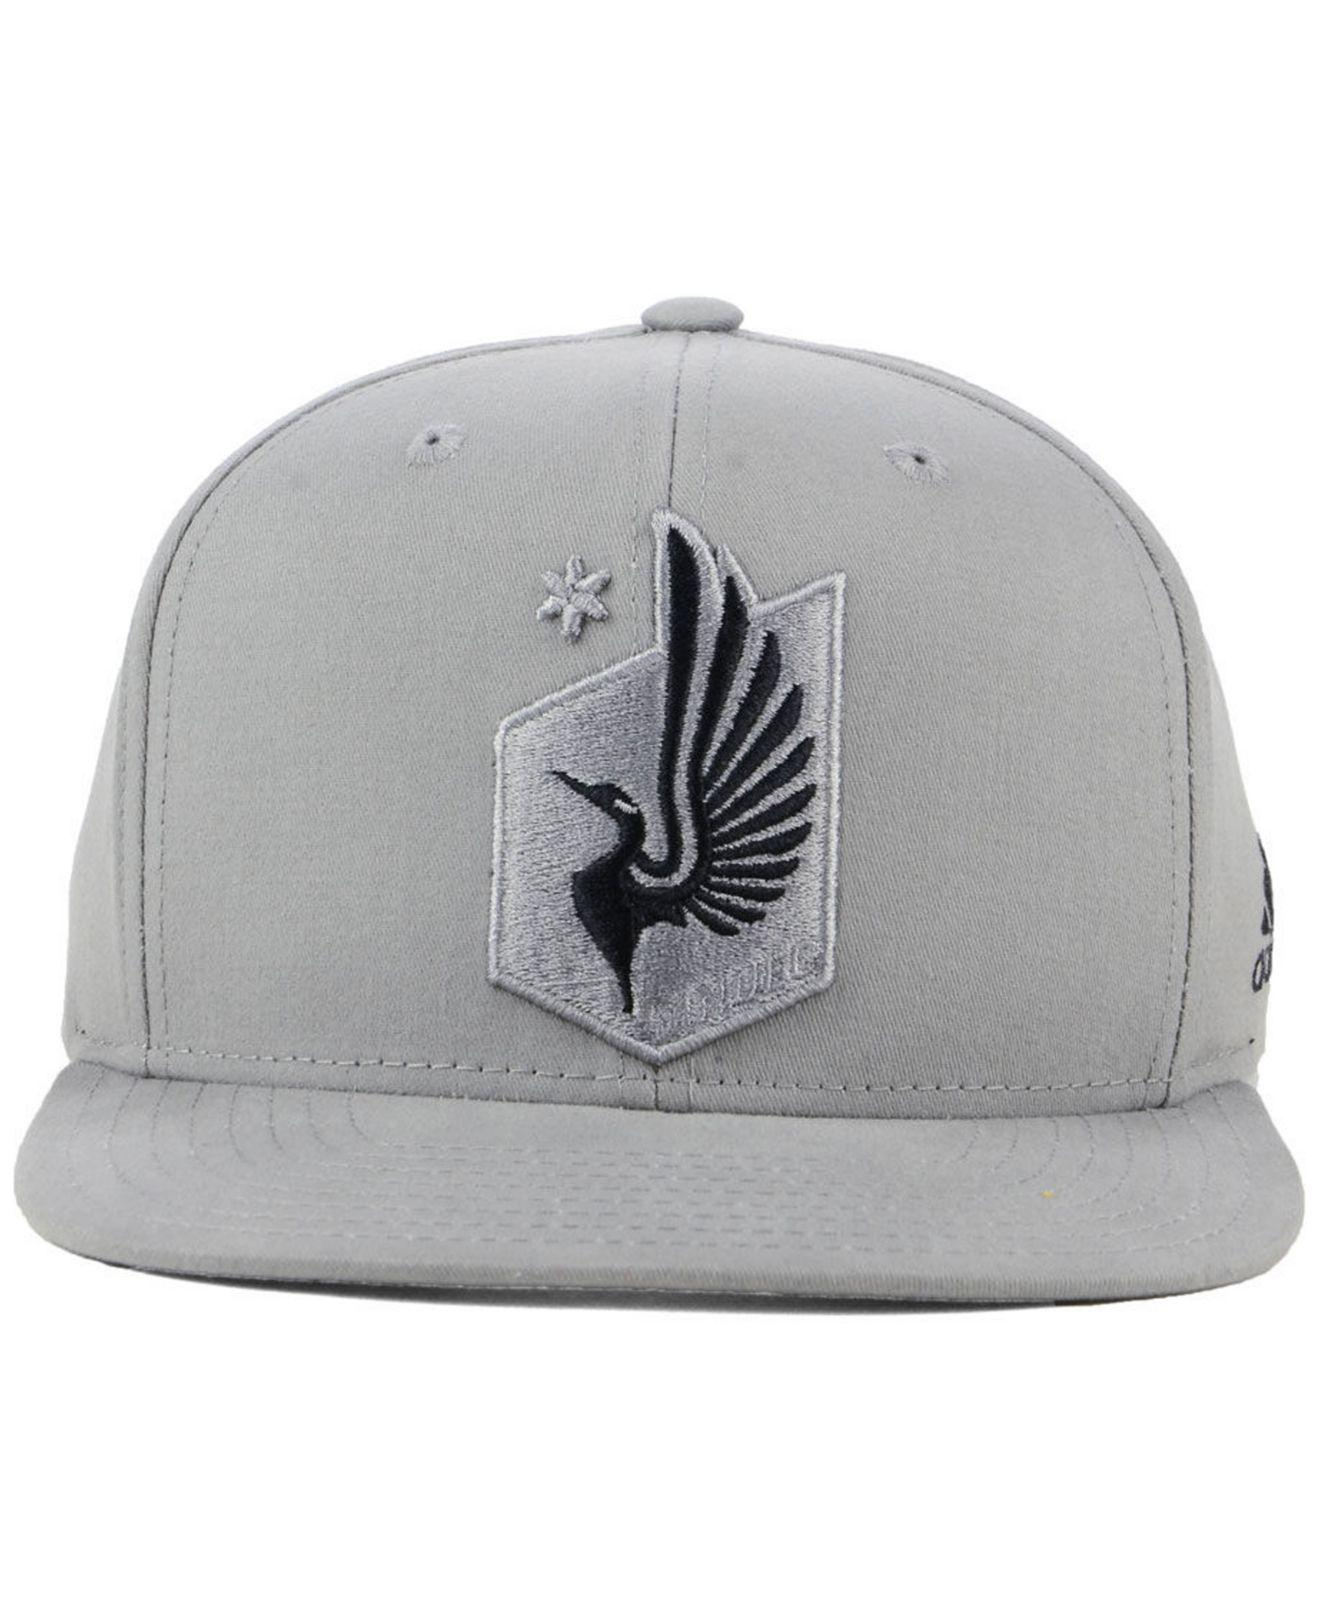 1ed0678ace314 ... top quality lyst adidas minnesota united fc gray snapback cap in gray  for men 14bb5 172d3